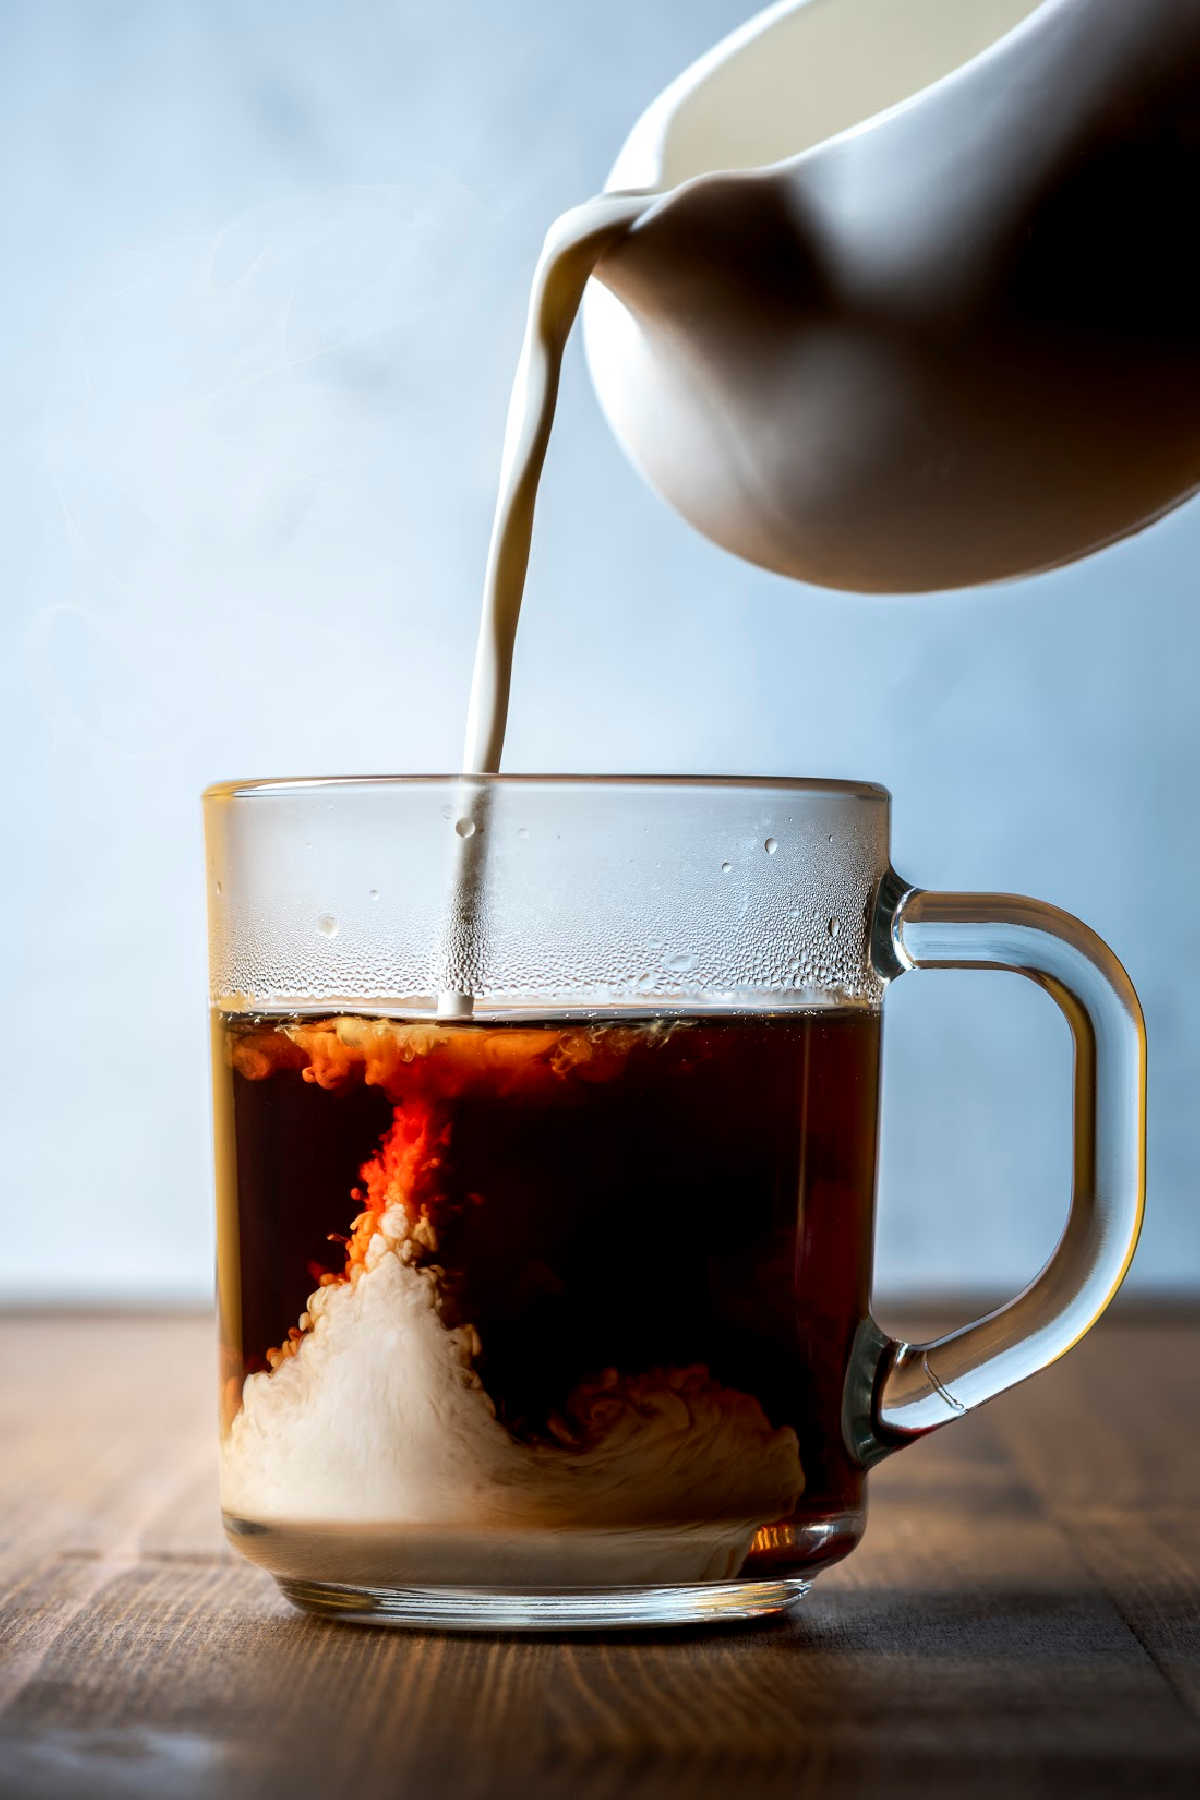 container of homemade coffee creamer pouring into a glass mug with coffee.